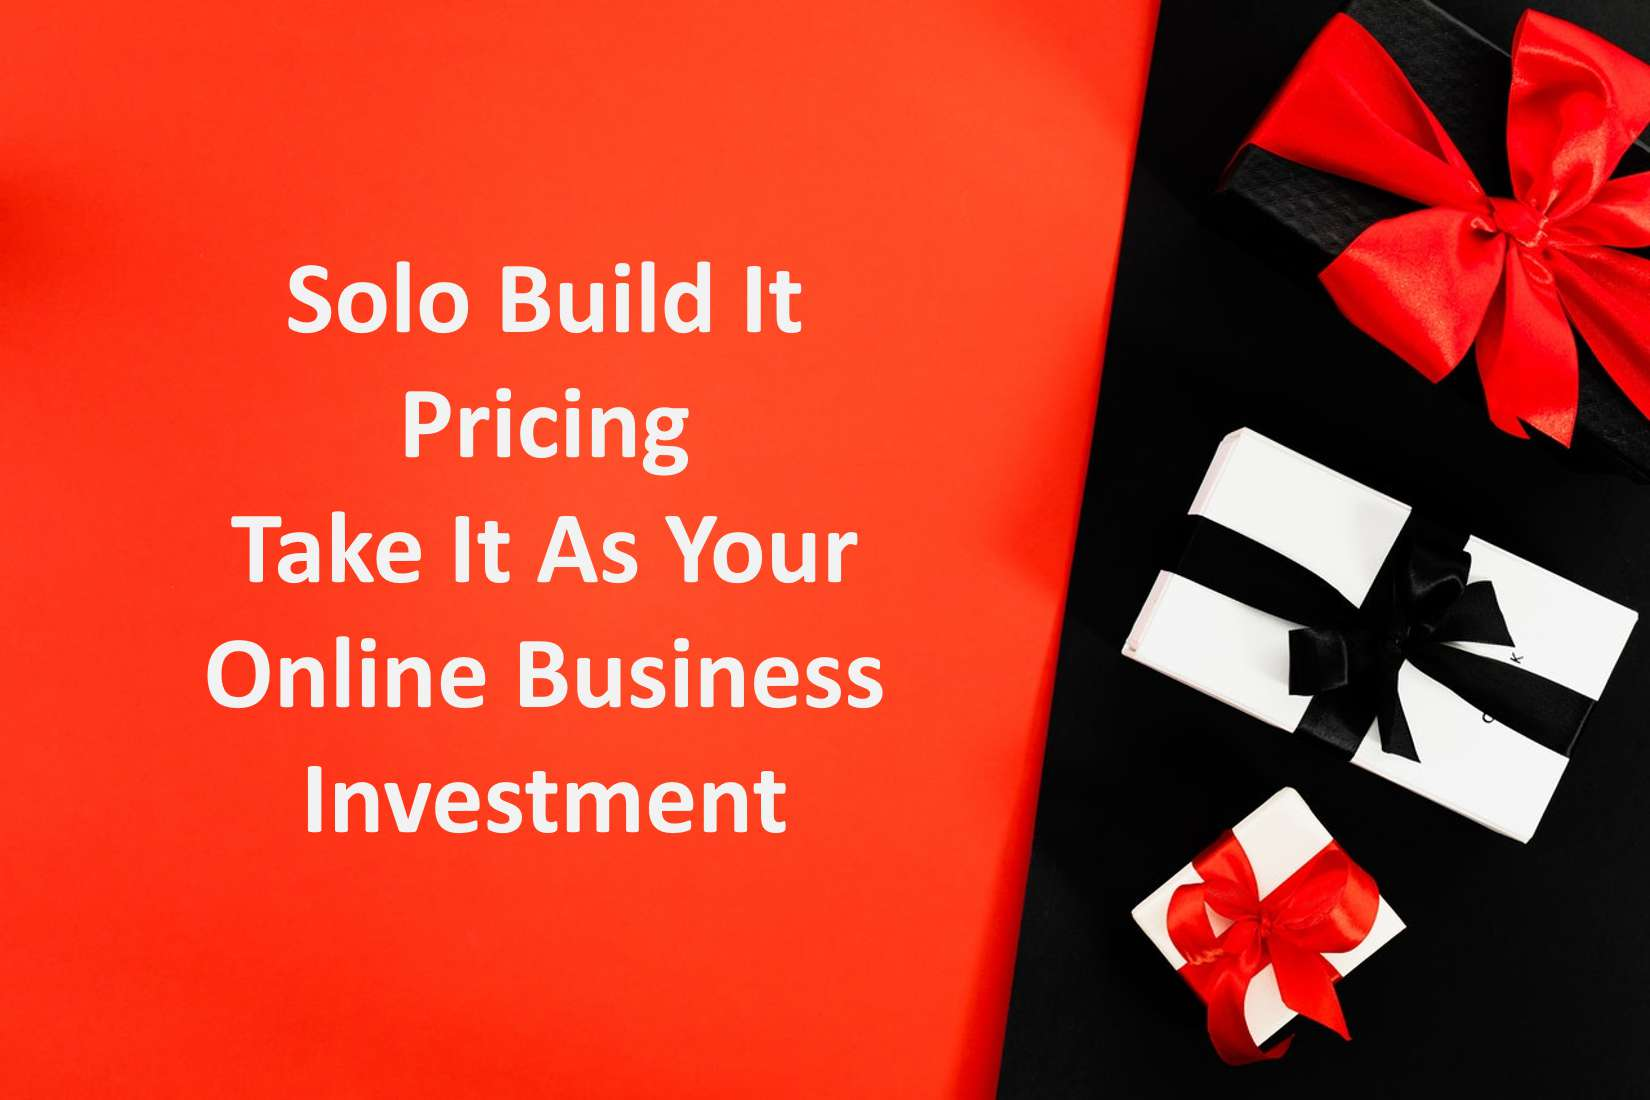 Solo Build It Pricing